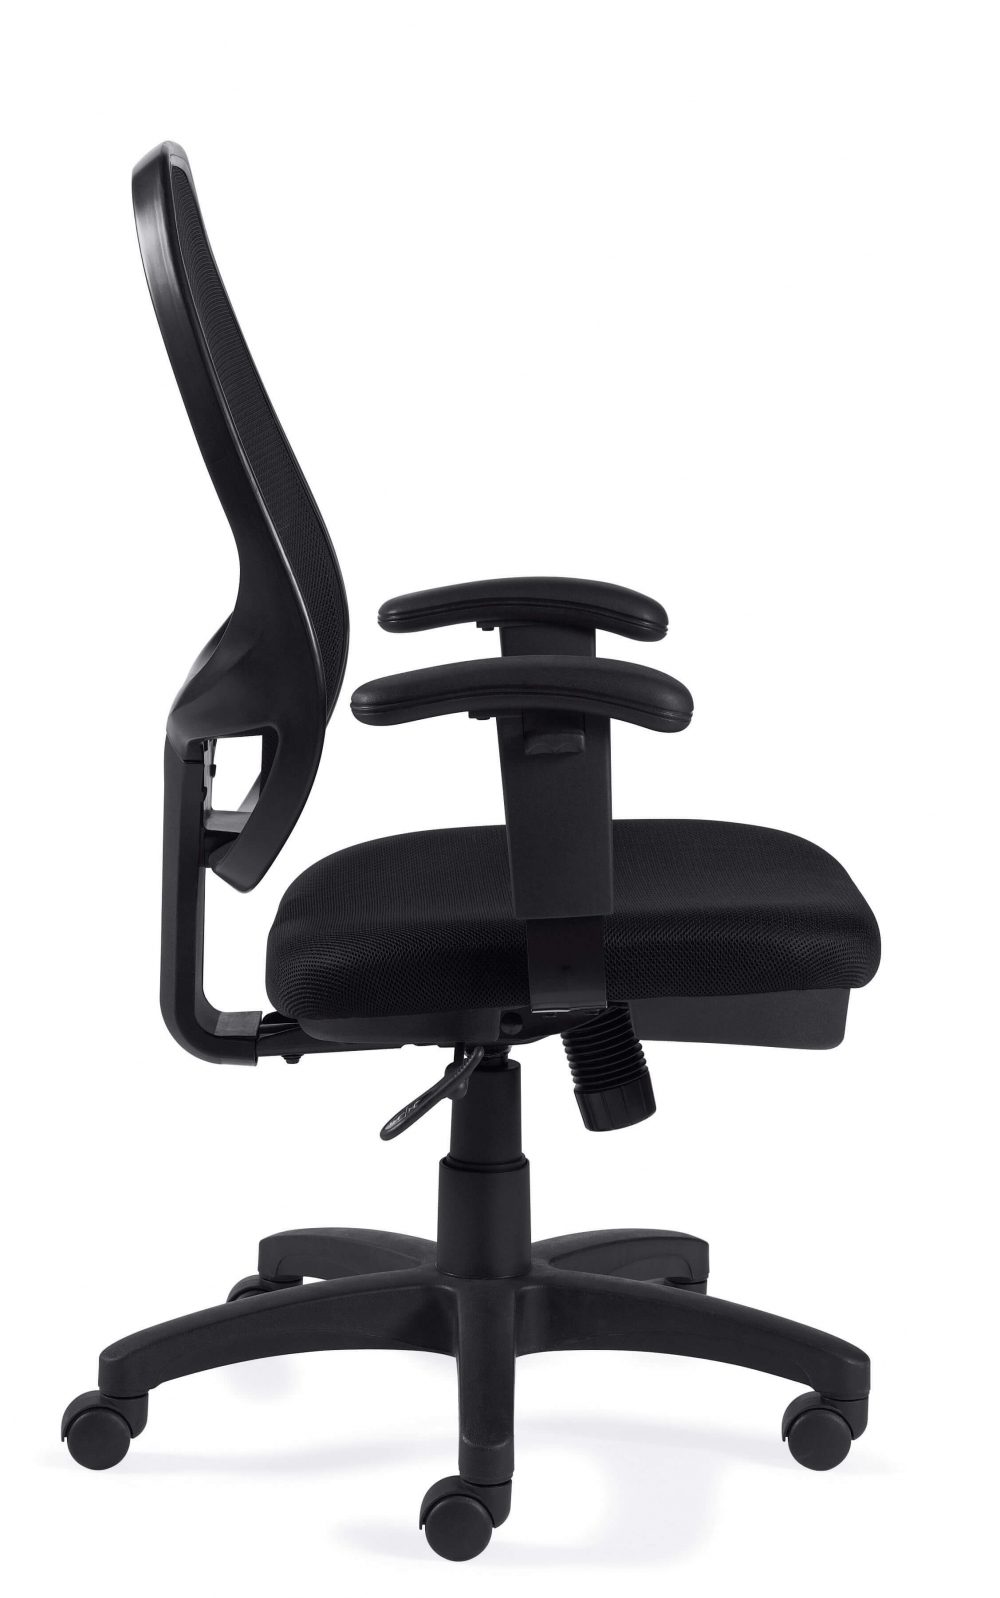 Adjustable chairs side view